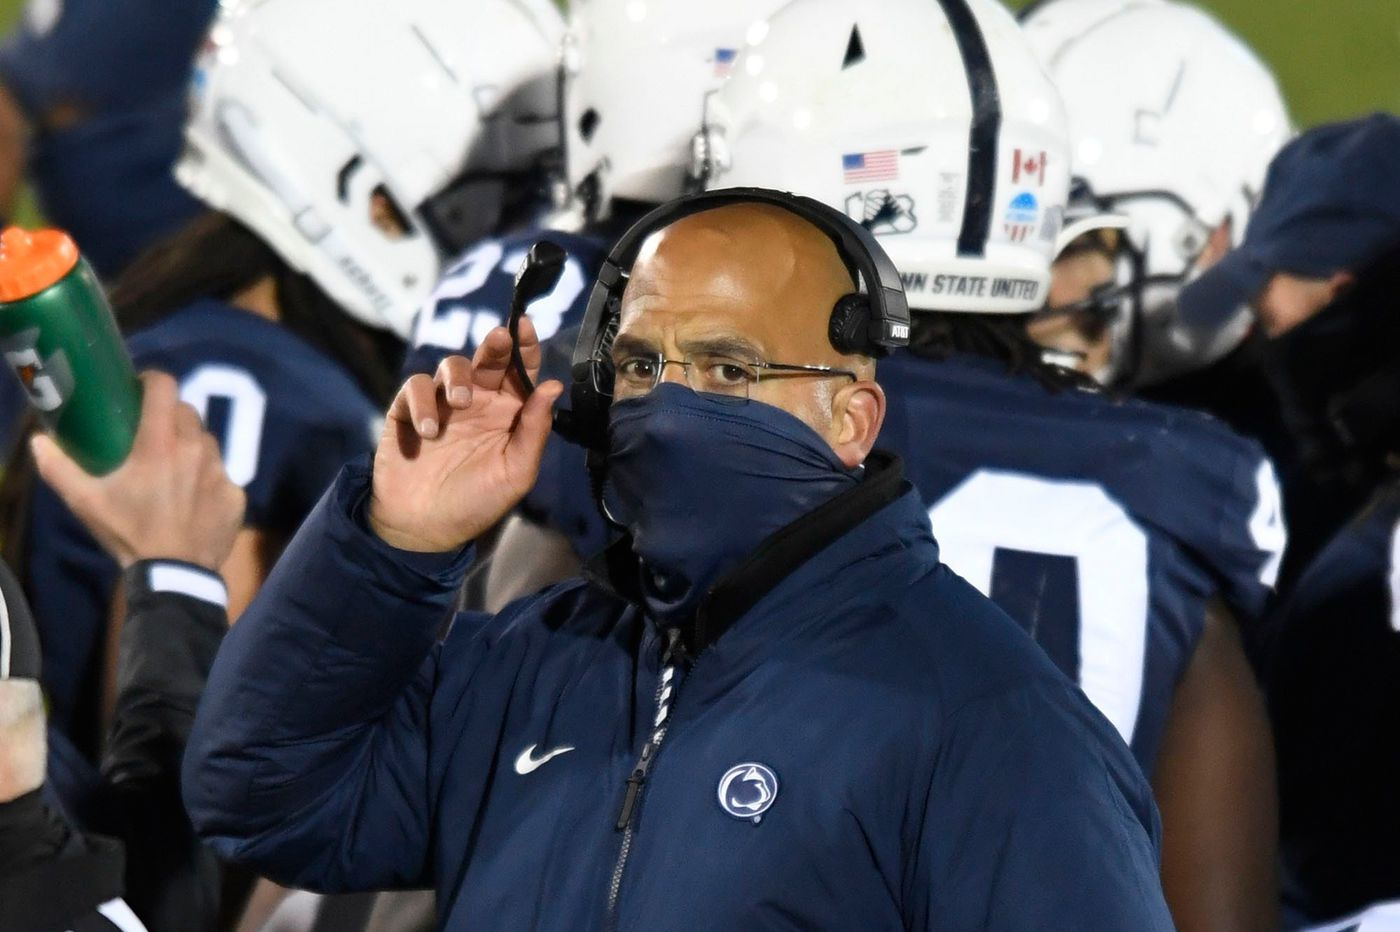 A Big Ten championship and a playoff berth are out of reach, but Penn State players haven't given up on 2020